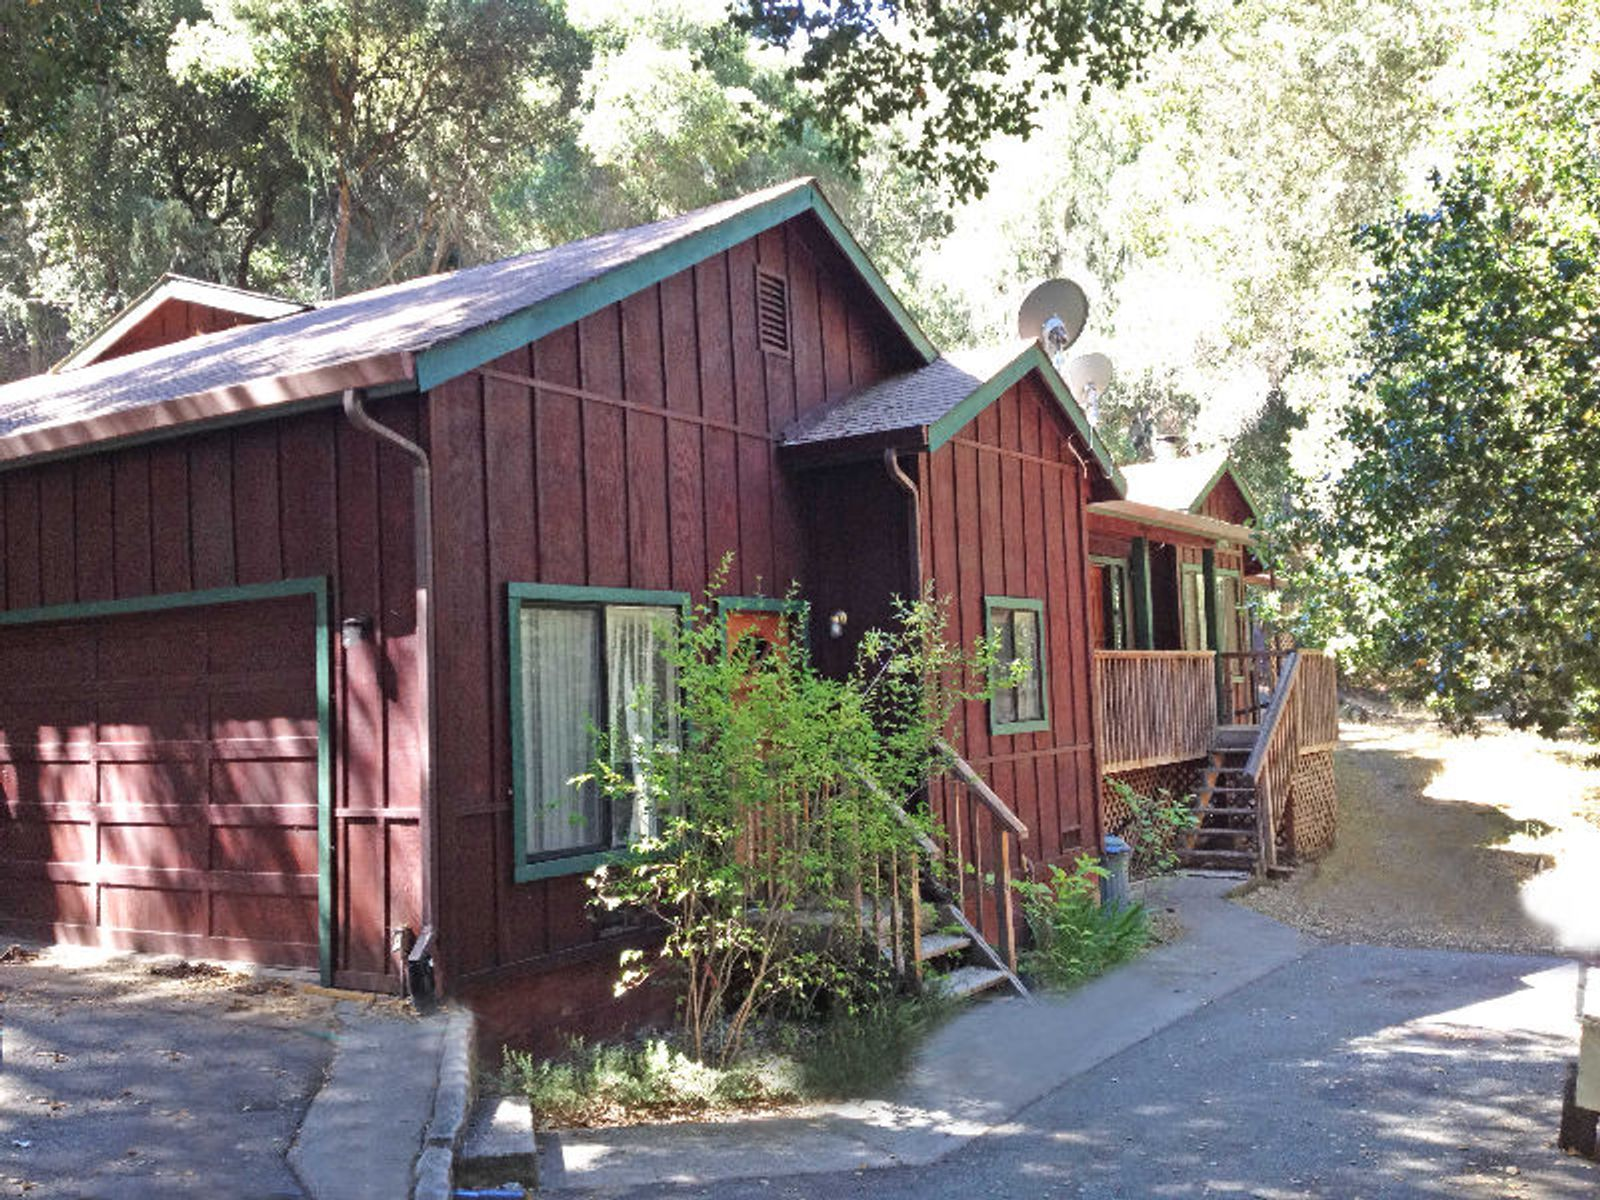 Country Living in Carmel Valley, Carmel Valley CA Single Family Home - Monterey Real Estate